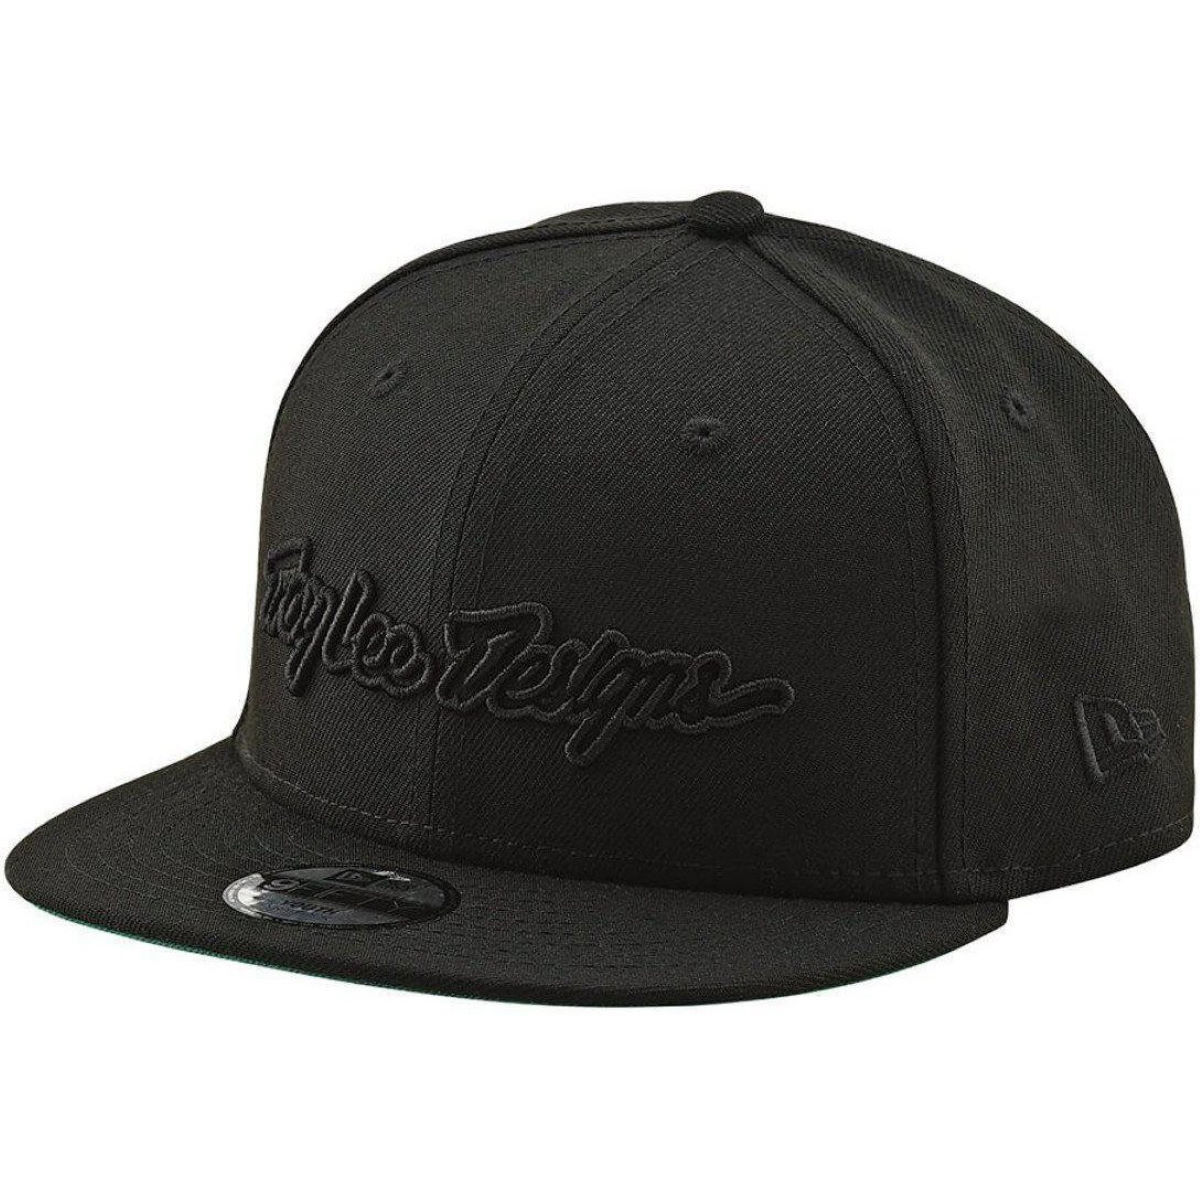 ComprarTroy Lee Designs Youth Classic Signature Snapback - Gorras